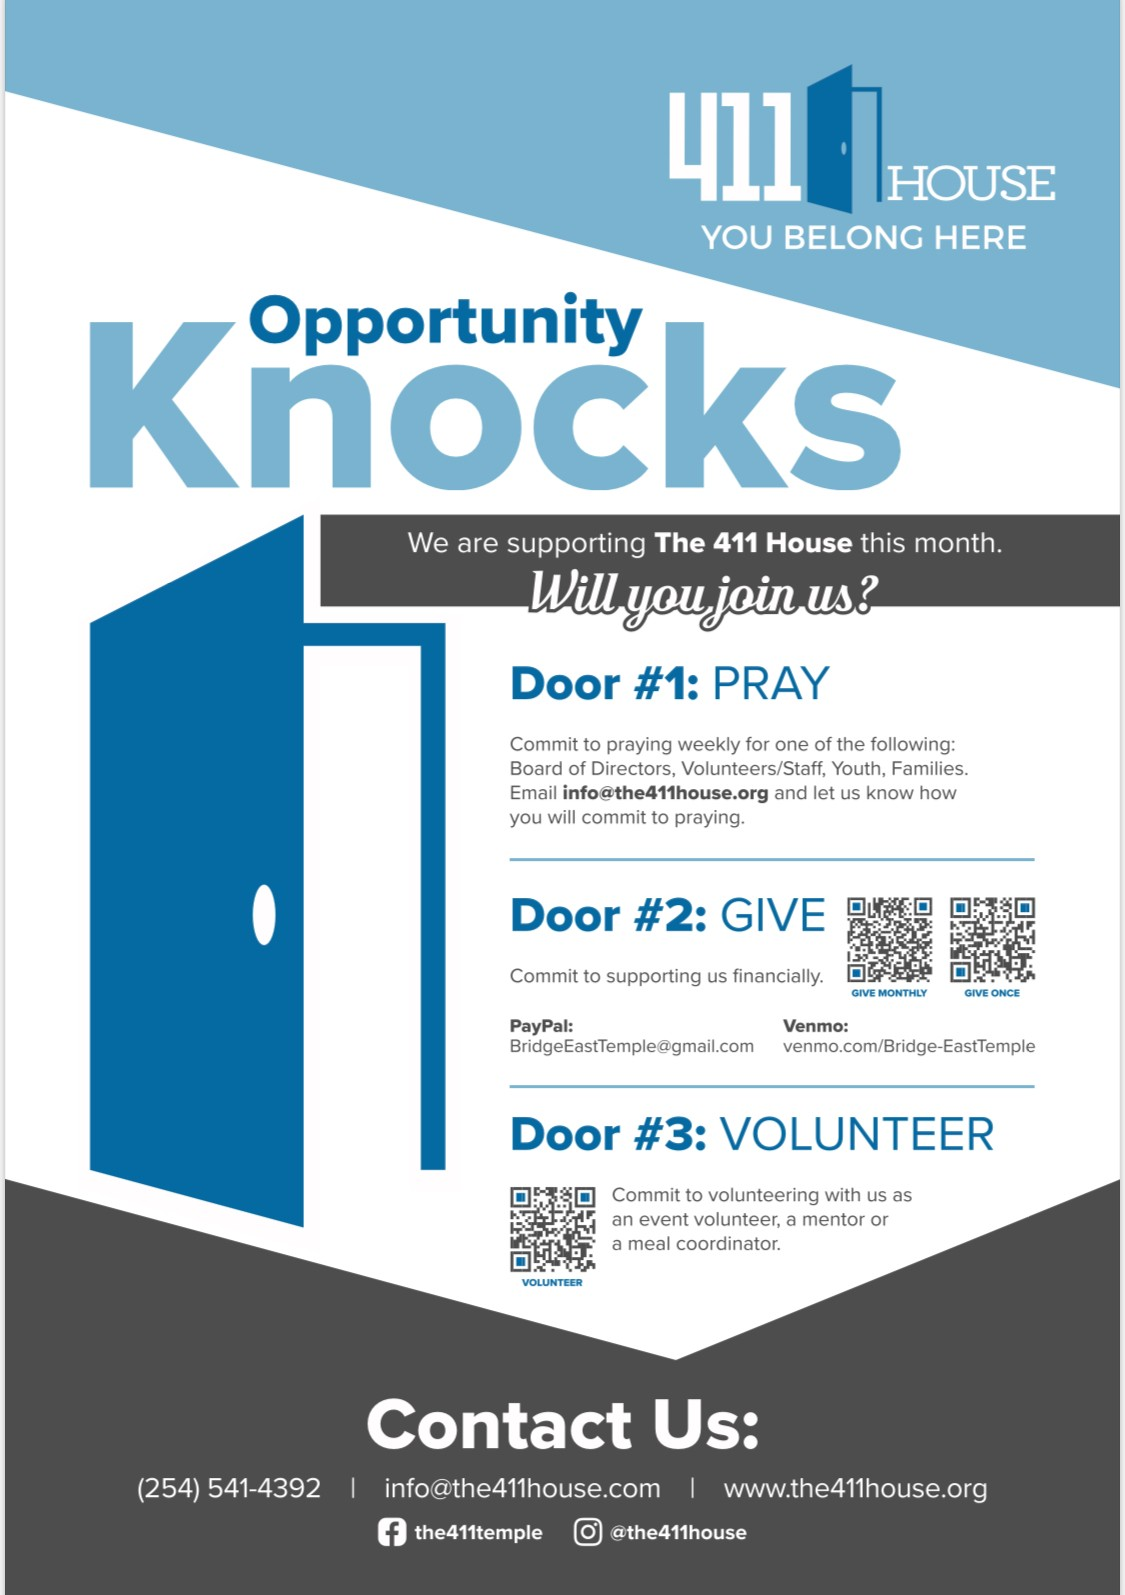 Opportunity Knocks Campaign poster